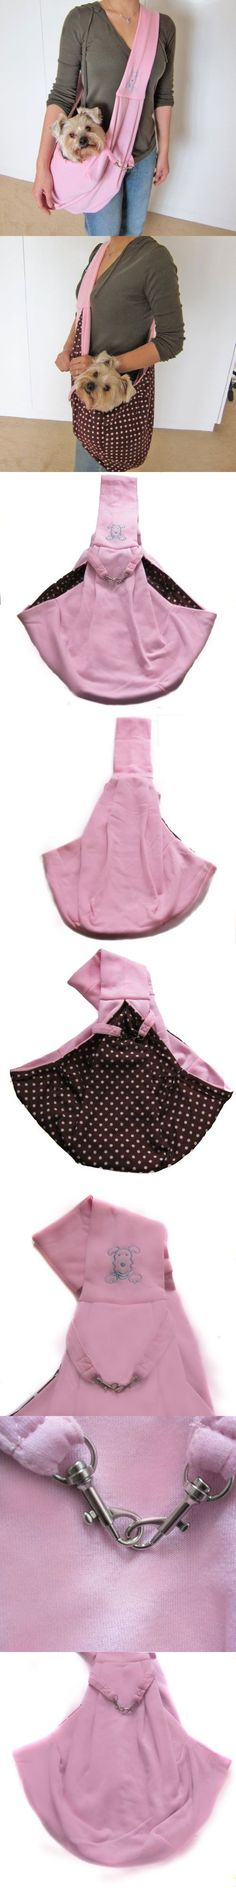 Make one special photo charms for your pets, 100% compatible with your Pandora bracelets.  Alfie Couture Designer Pet Accessory - Chico Reversible Pet Sling Carrier - Color: Pink - This reversible sling dog carriers are the perfect combination of convenience and style. Convenient sling-style carrier loops over shoulder while the pet rests in the pouch on the opposite hip to keep... - Carriers - Pet Supplies - $28.99